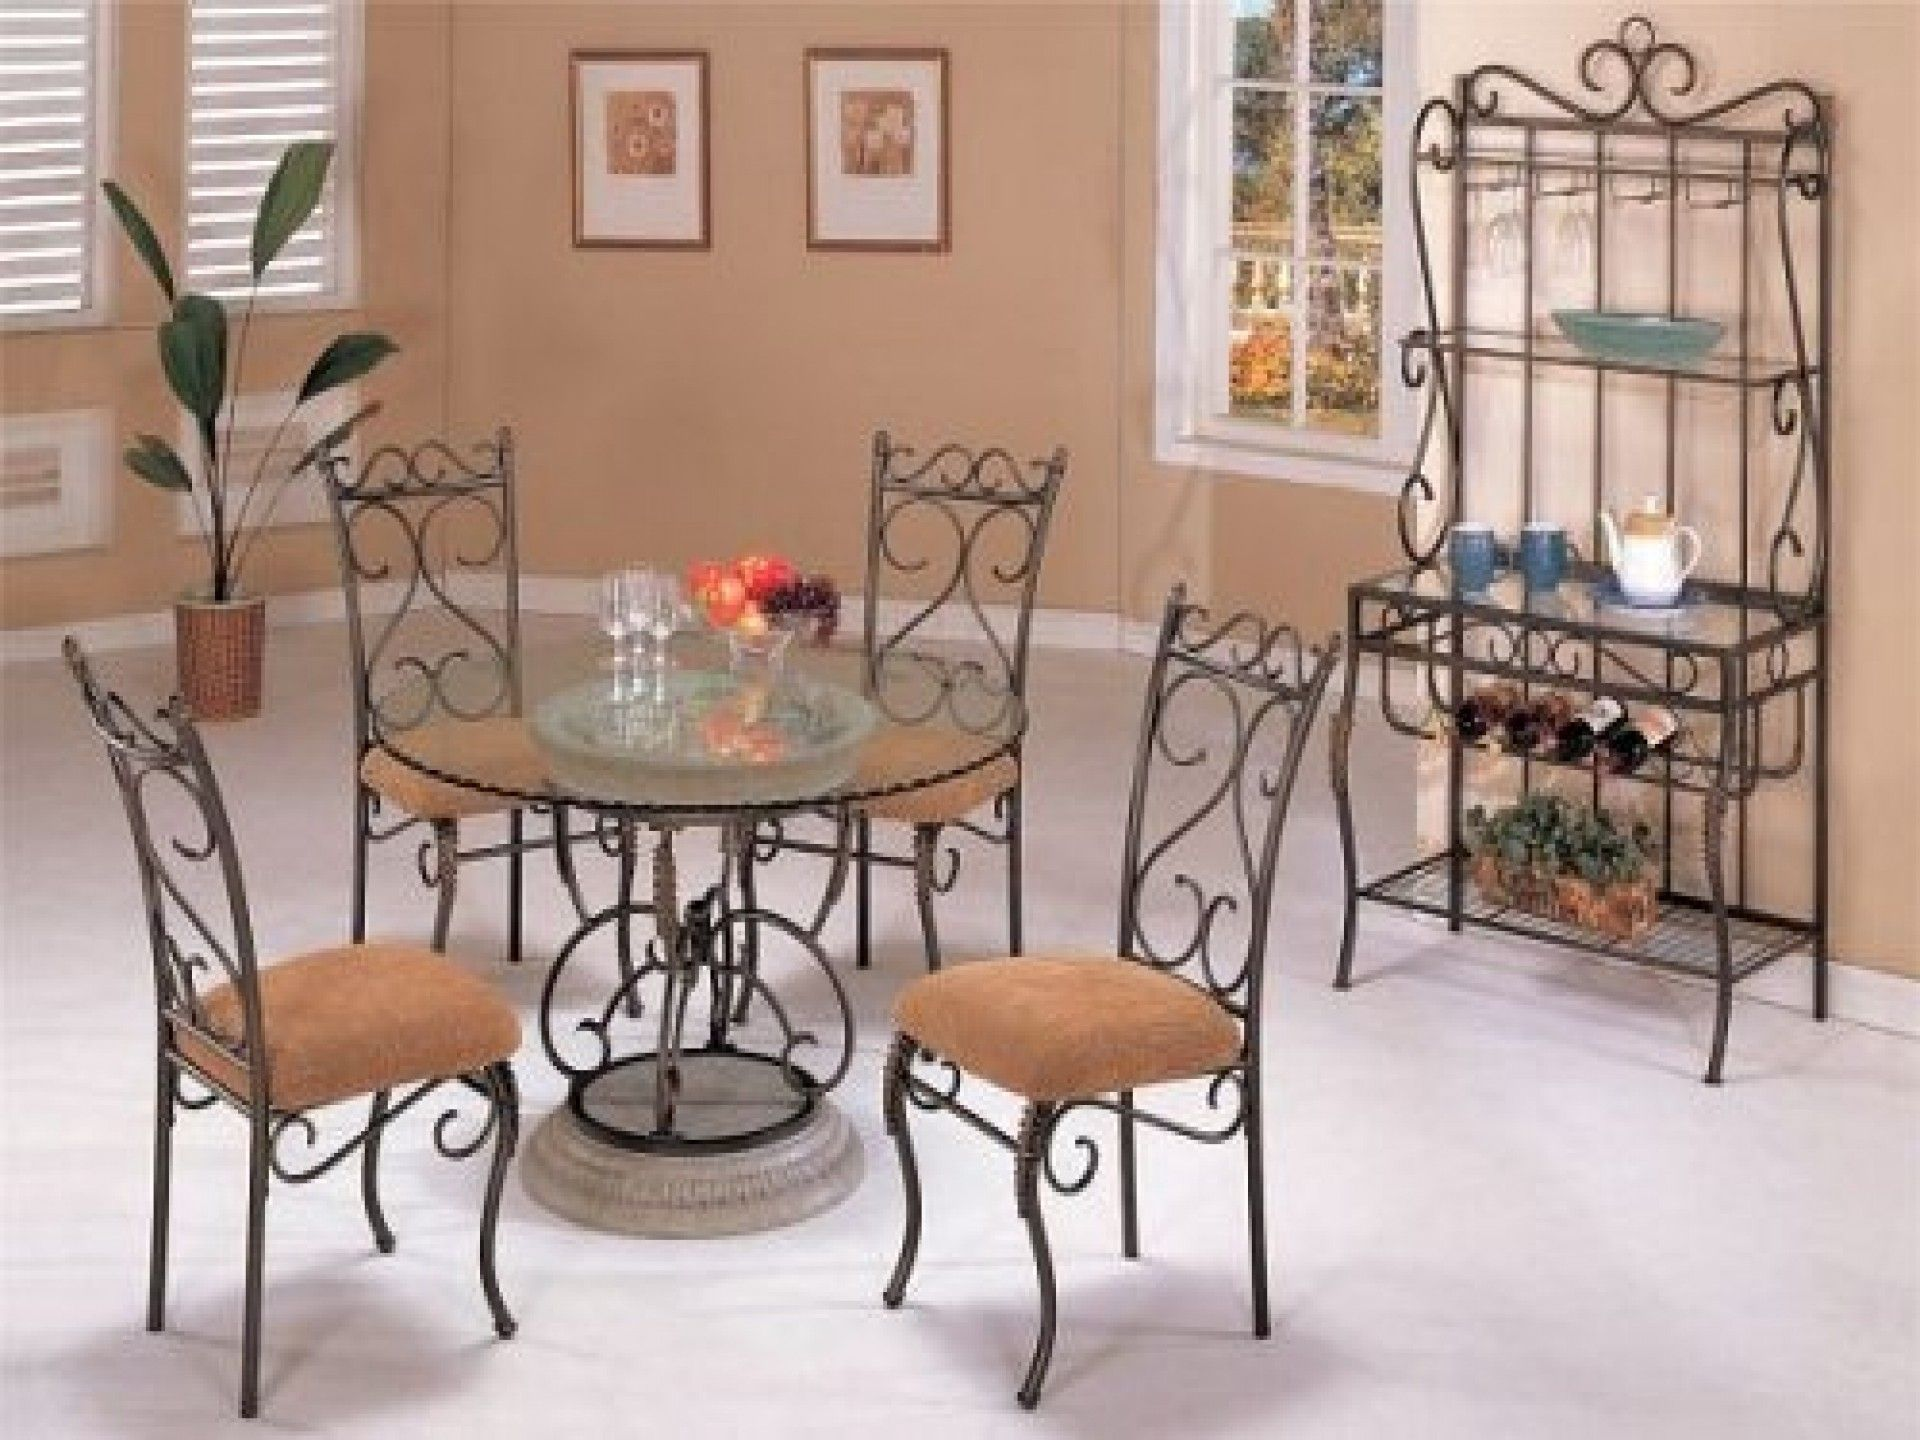 F Round Glass Top Dining Table With Oil Rubber Bronze Wrought Iron